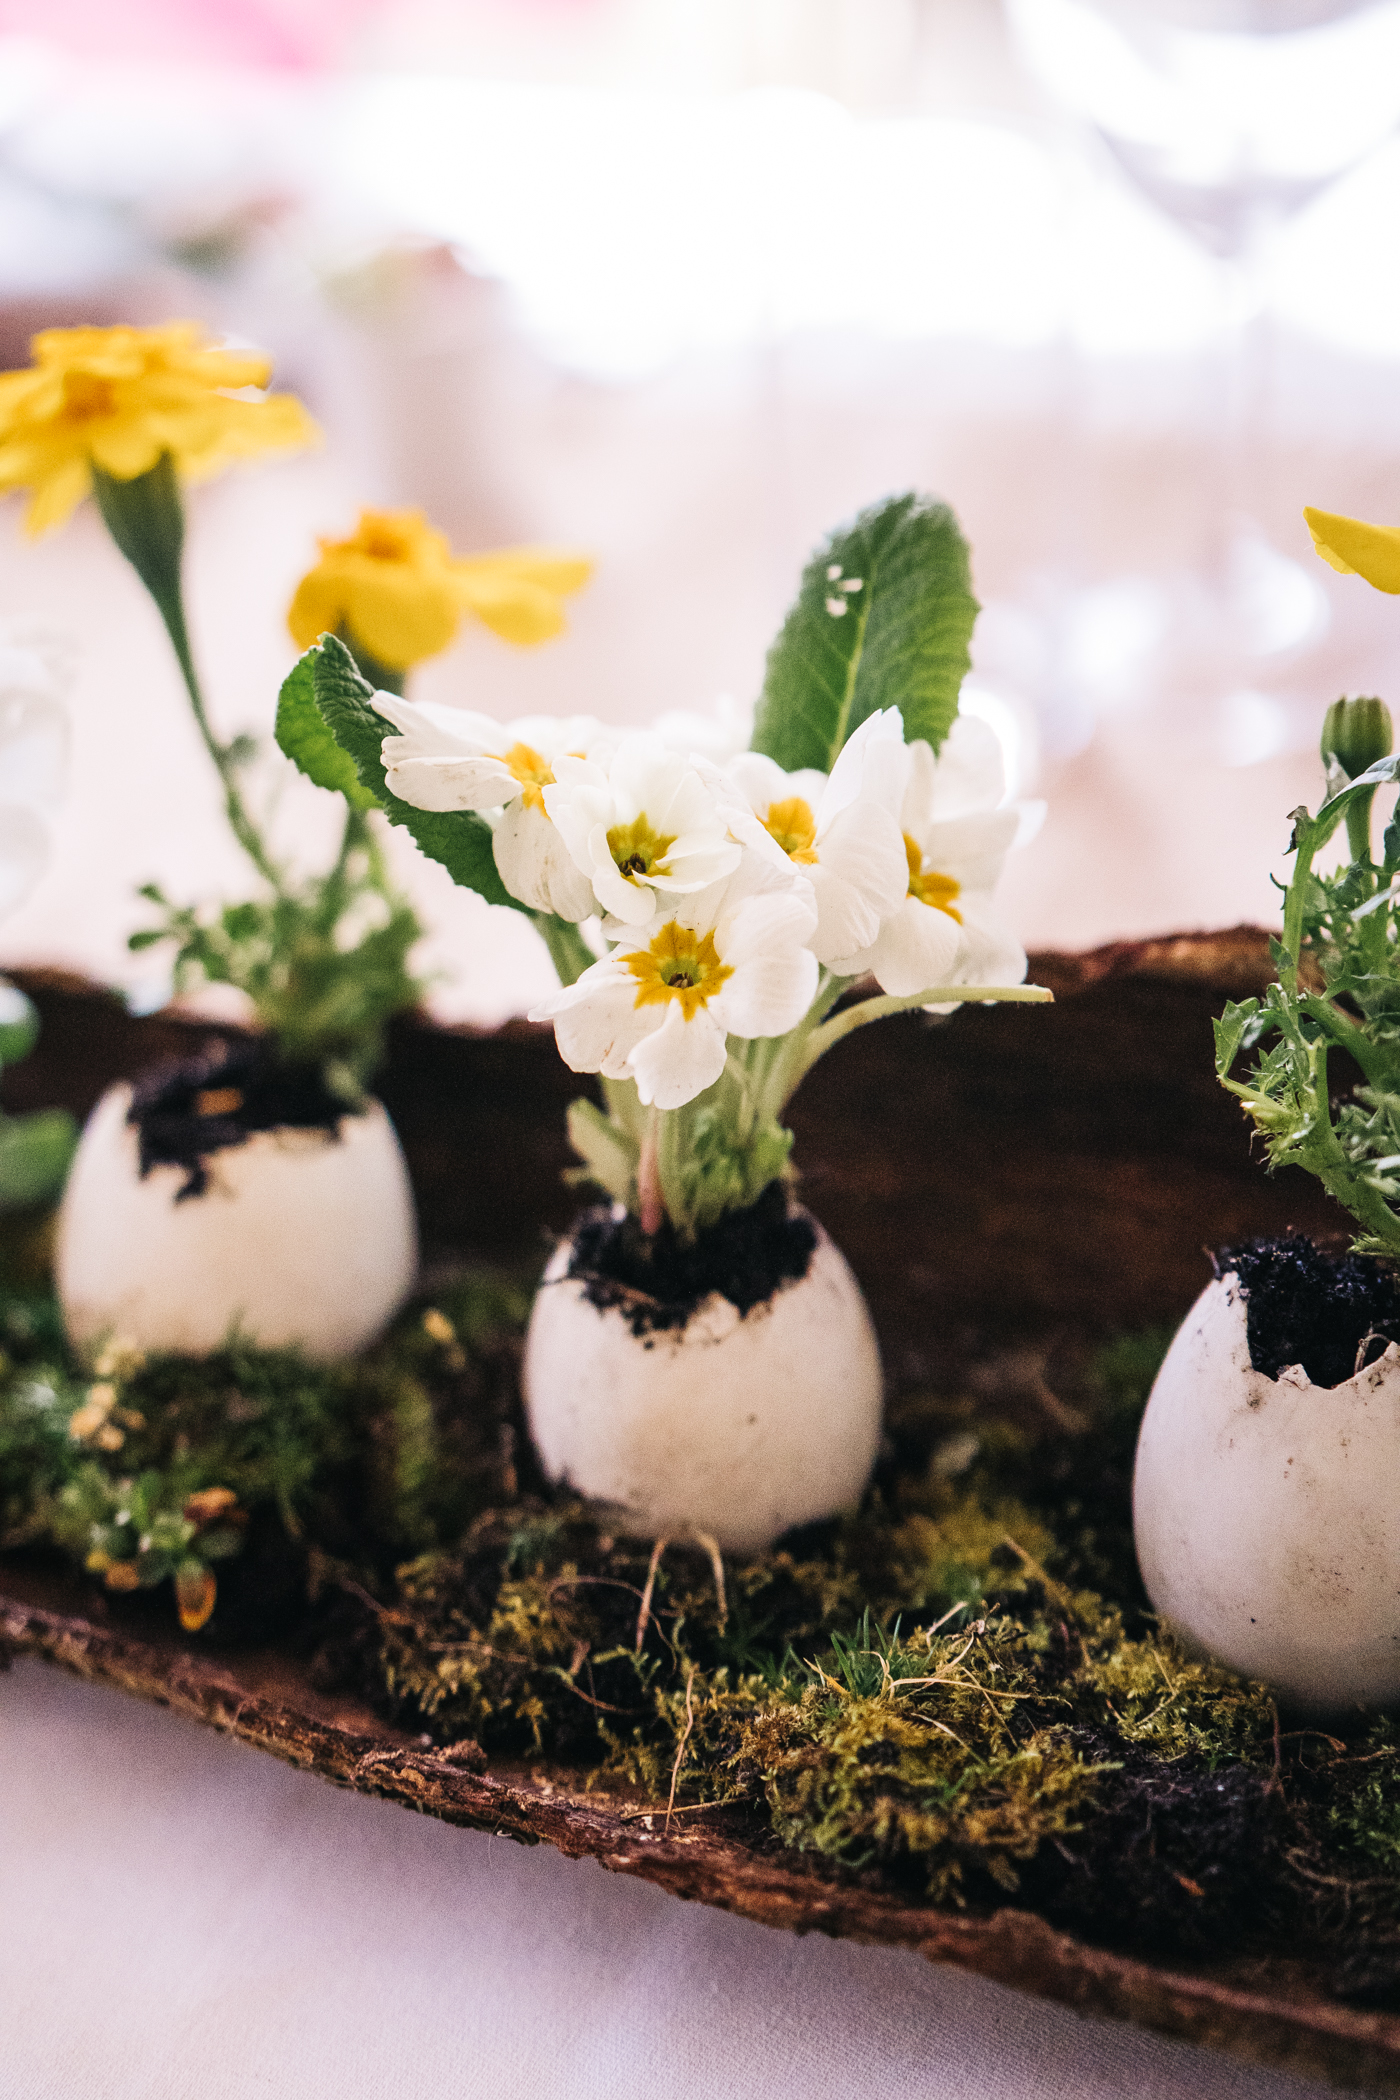 flowers planted in duck eggs as part of the styling. wedding at laskill house north yorkshire helmsley wedding photographer north east teesside